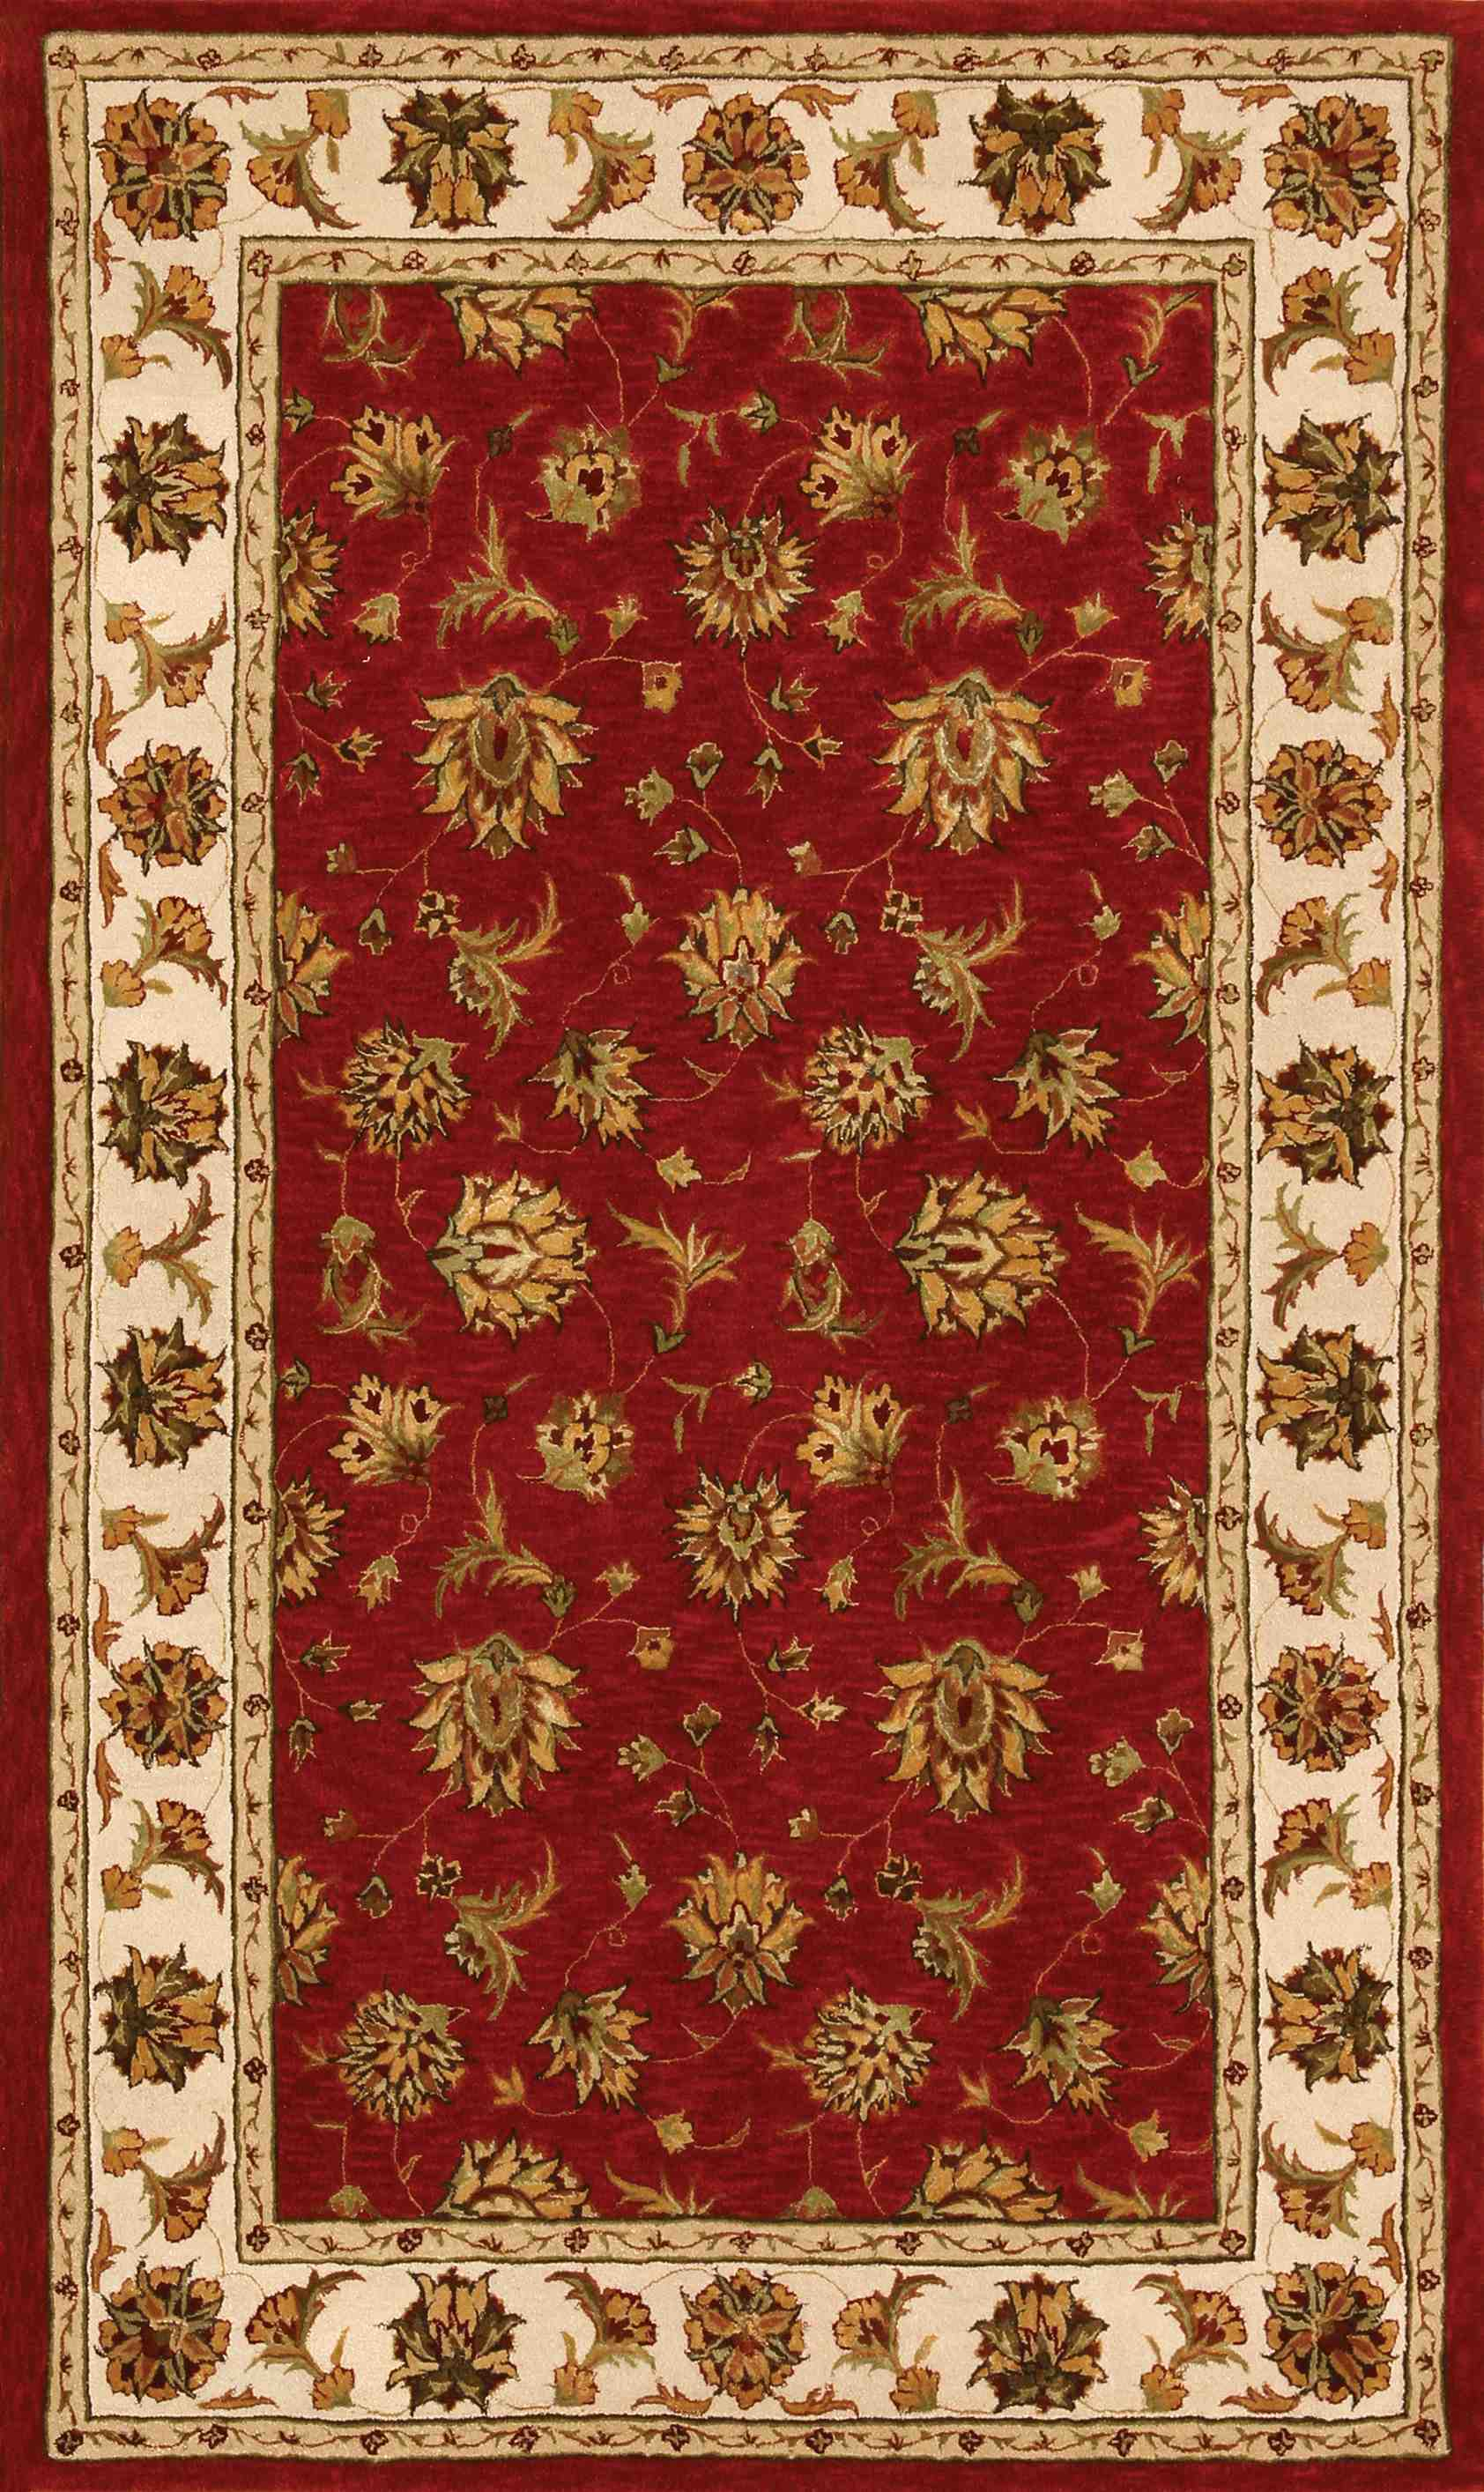 Dynamic Rugs Jewel Classic Red 70231 Area Rug